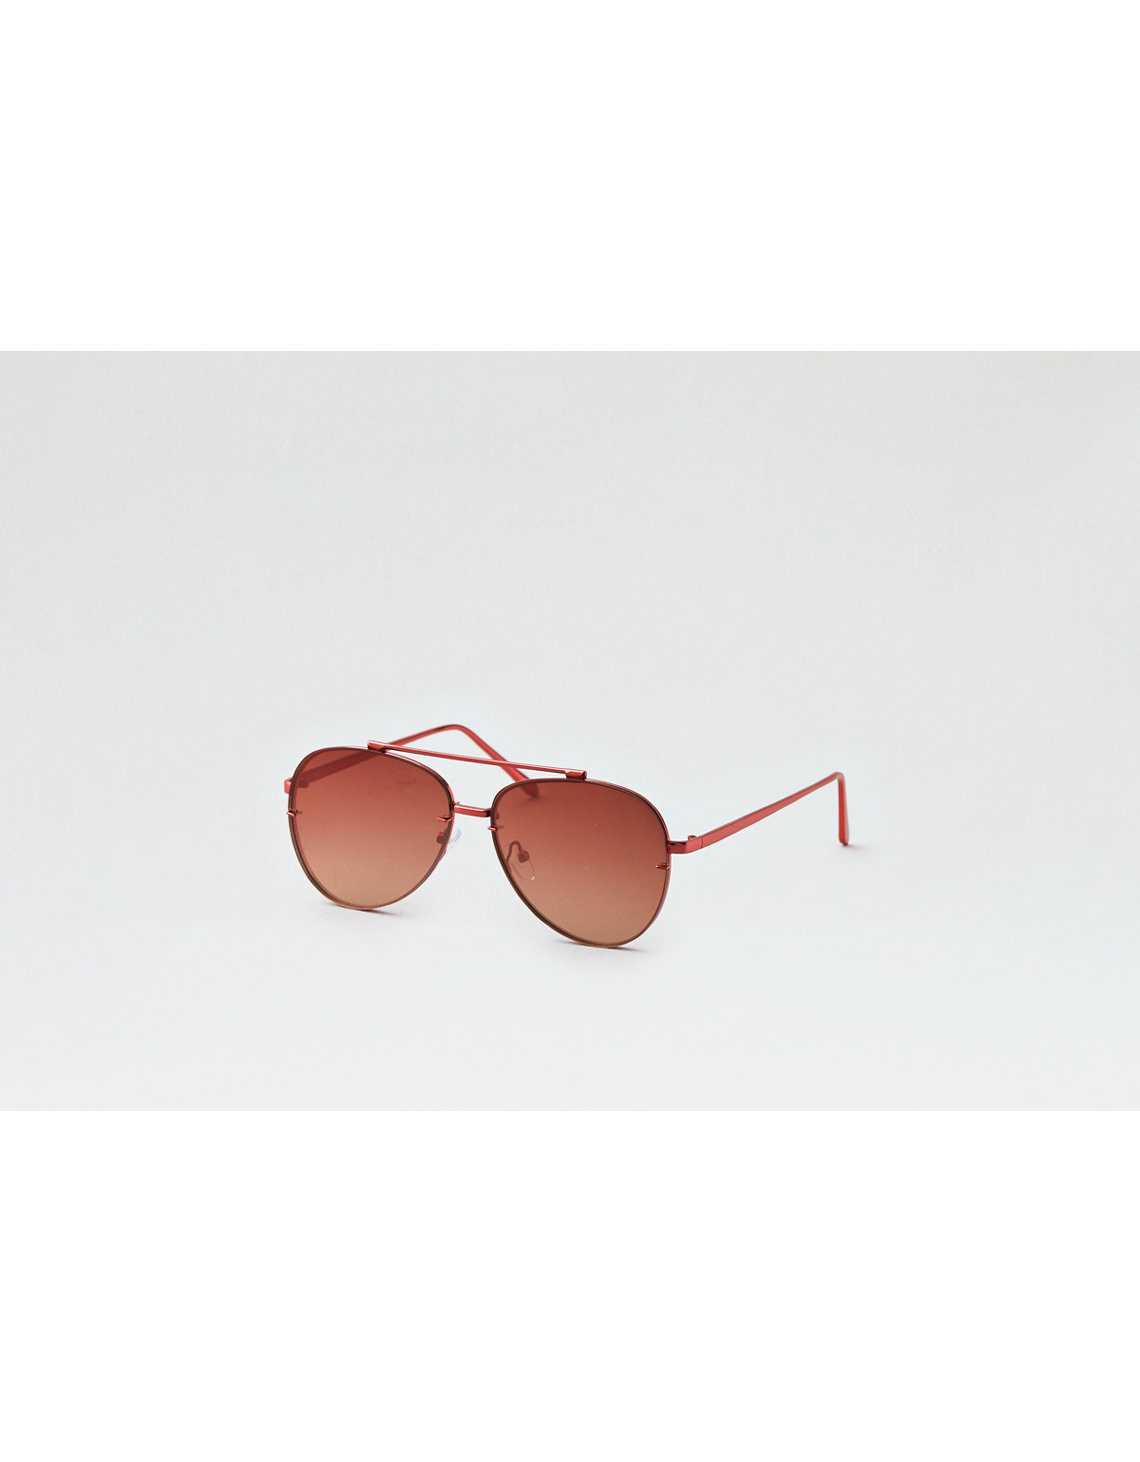 84fa58e5a6 Top Bar Aviator Sunglasses. Placeholder image. Product Image